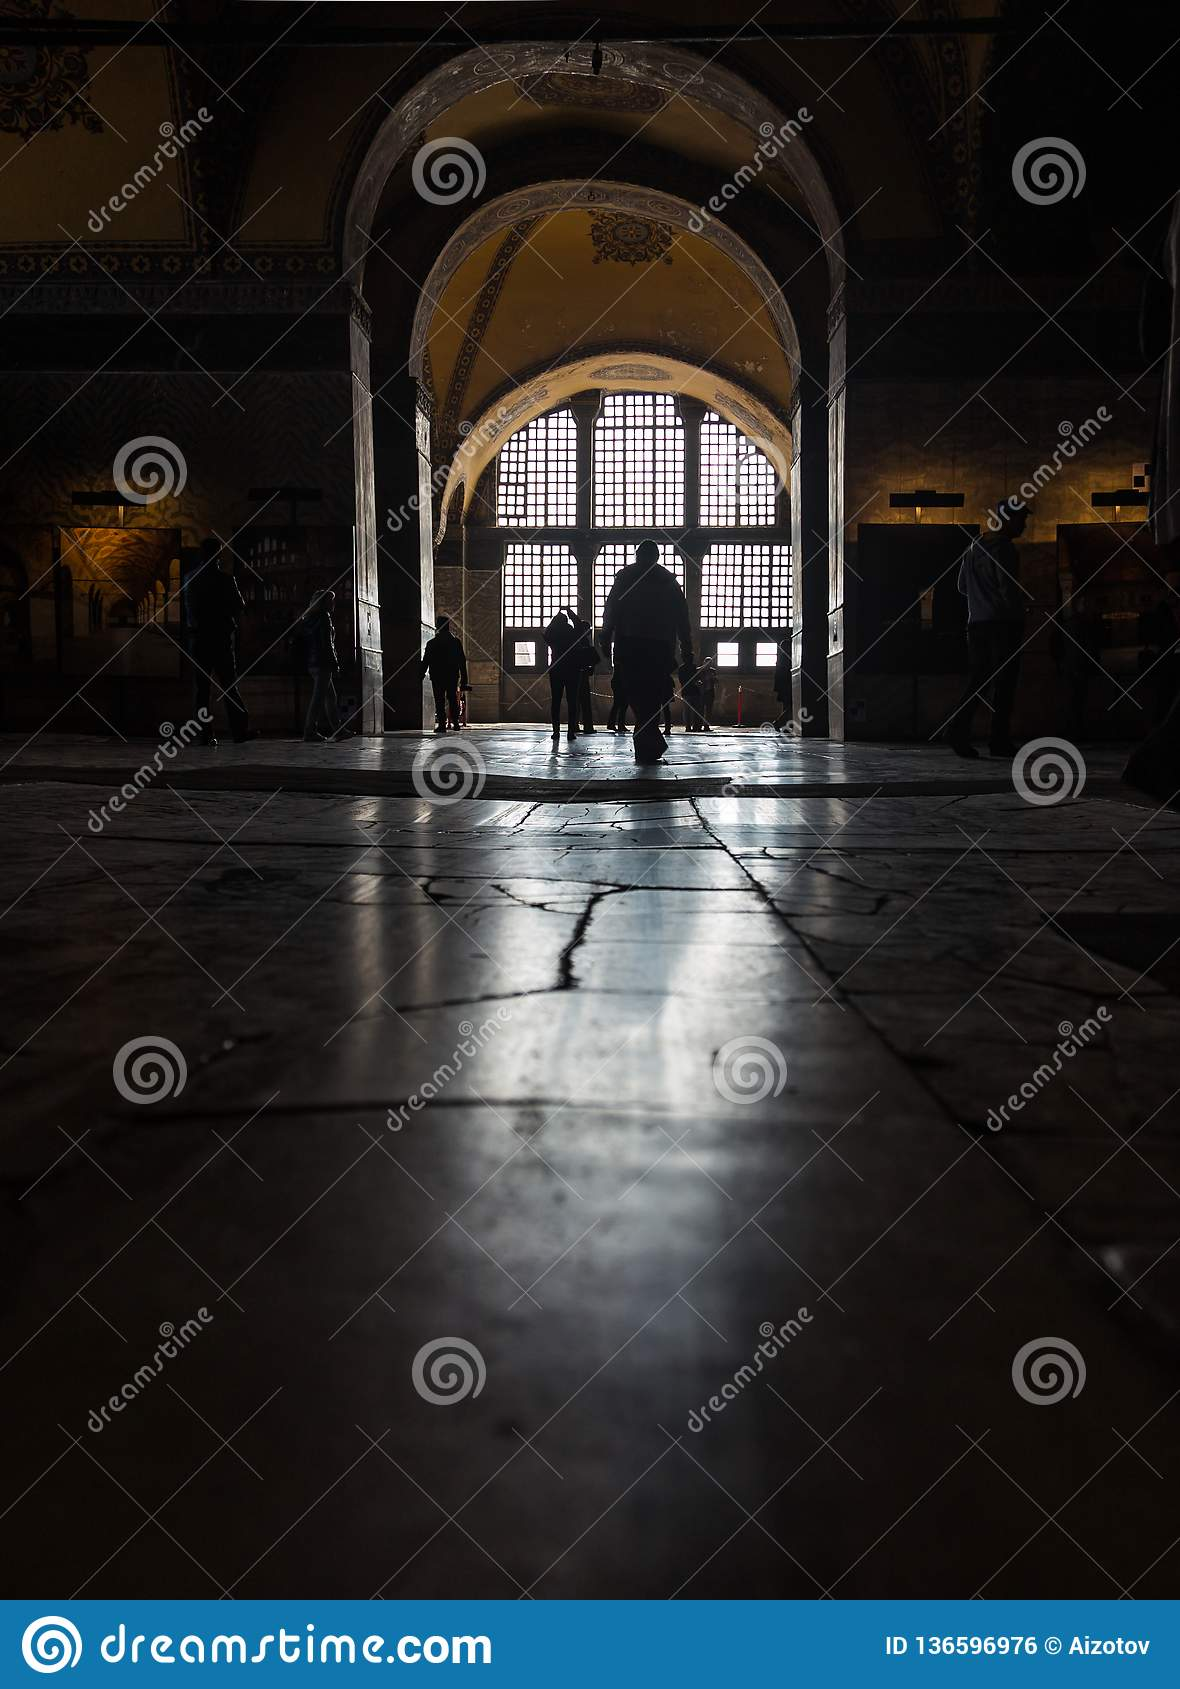 Reflection of light from the window of the floor in the temple of Aya Sofia in Istanbul, Turkey